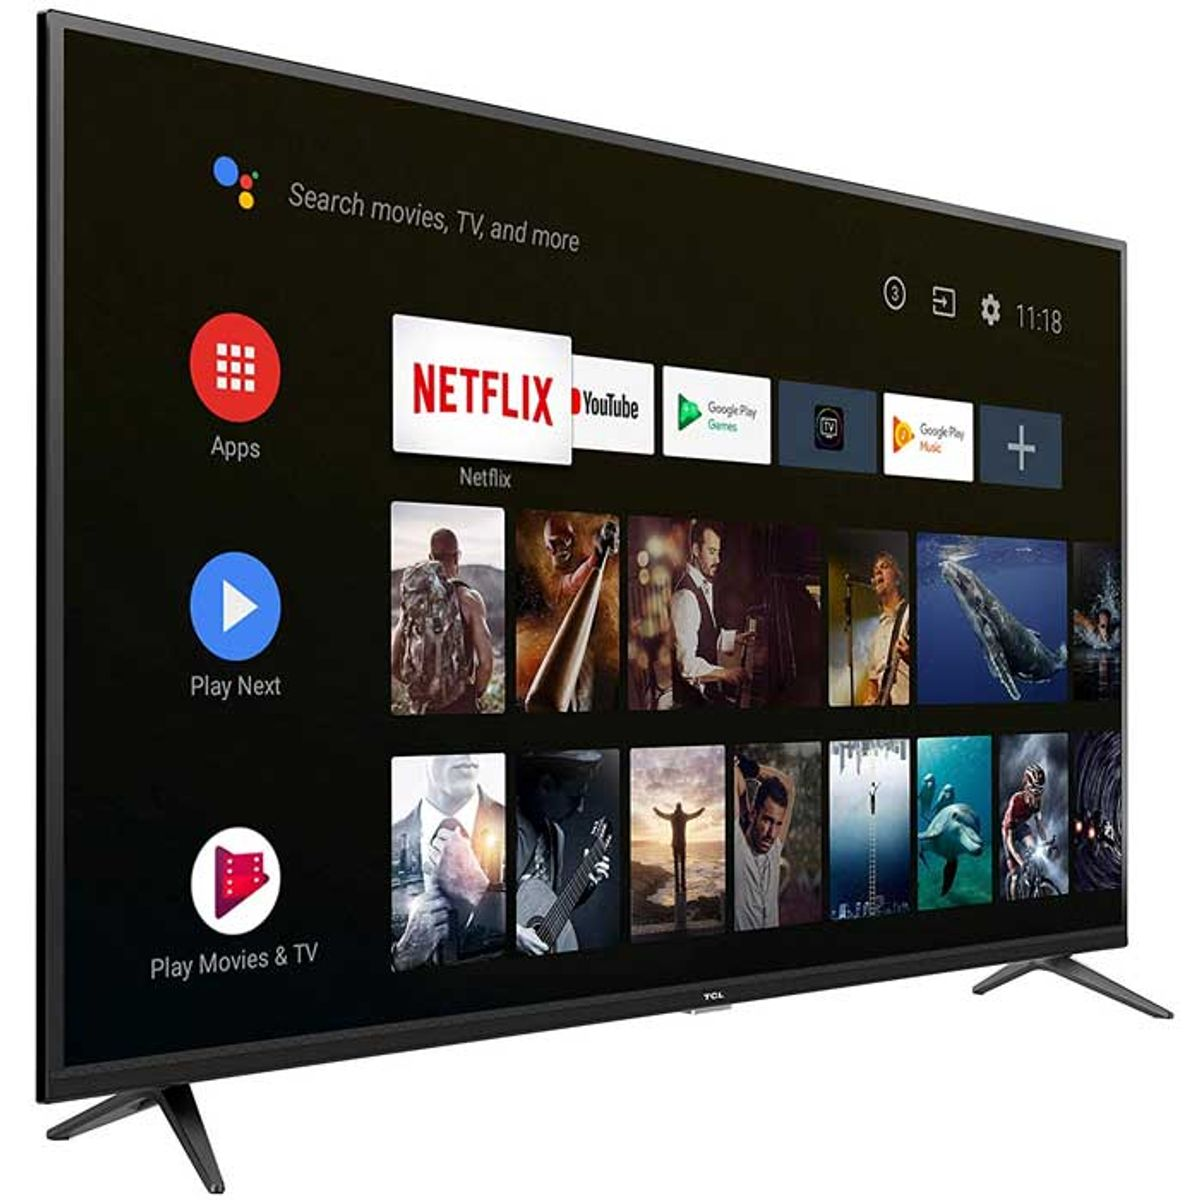 TCL 65 inches AI 4K UHD Certified Android Smart LED TV (65P8) TV Price in  India, Specification, Features | Digit.in